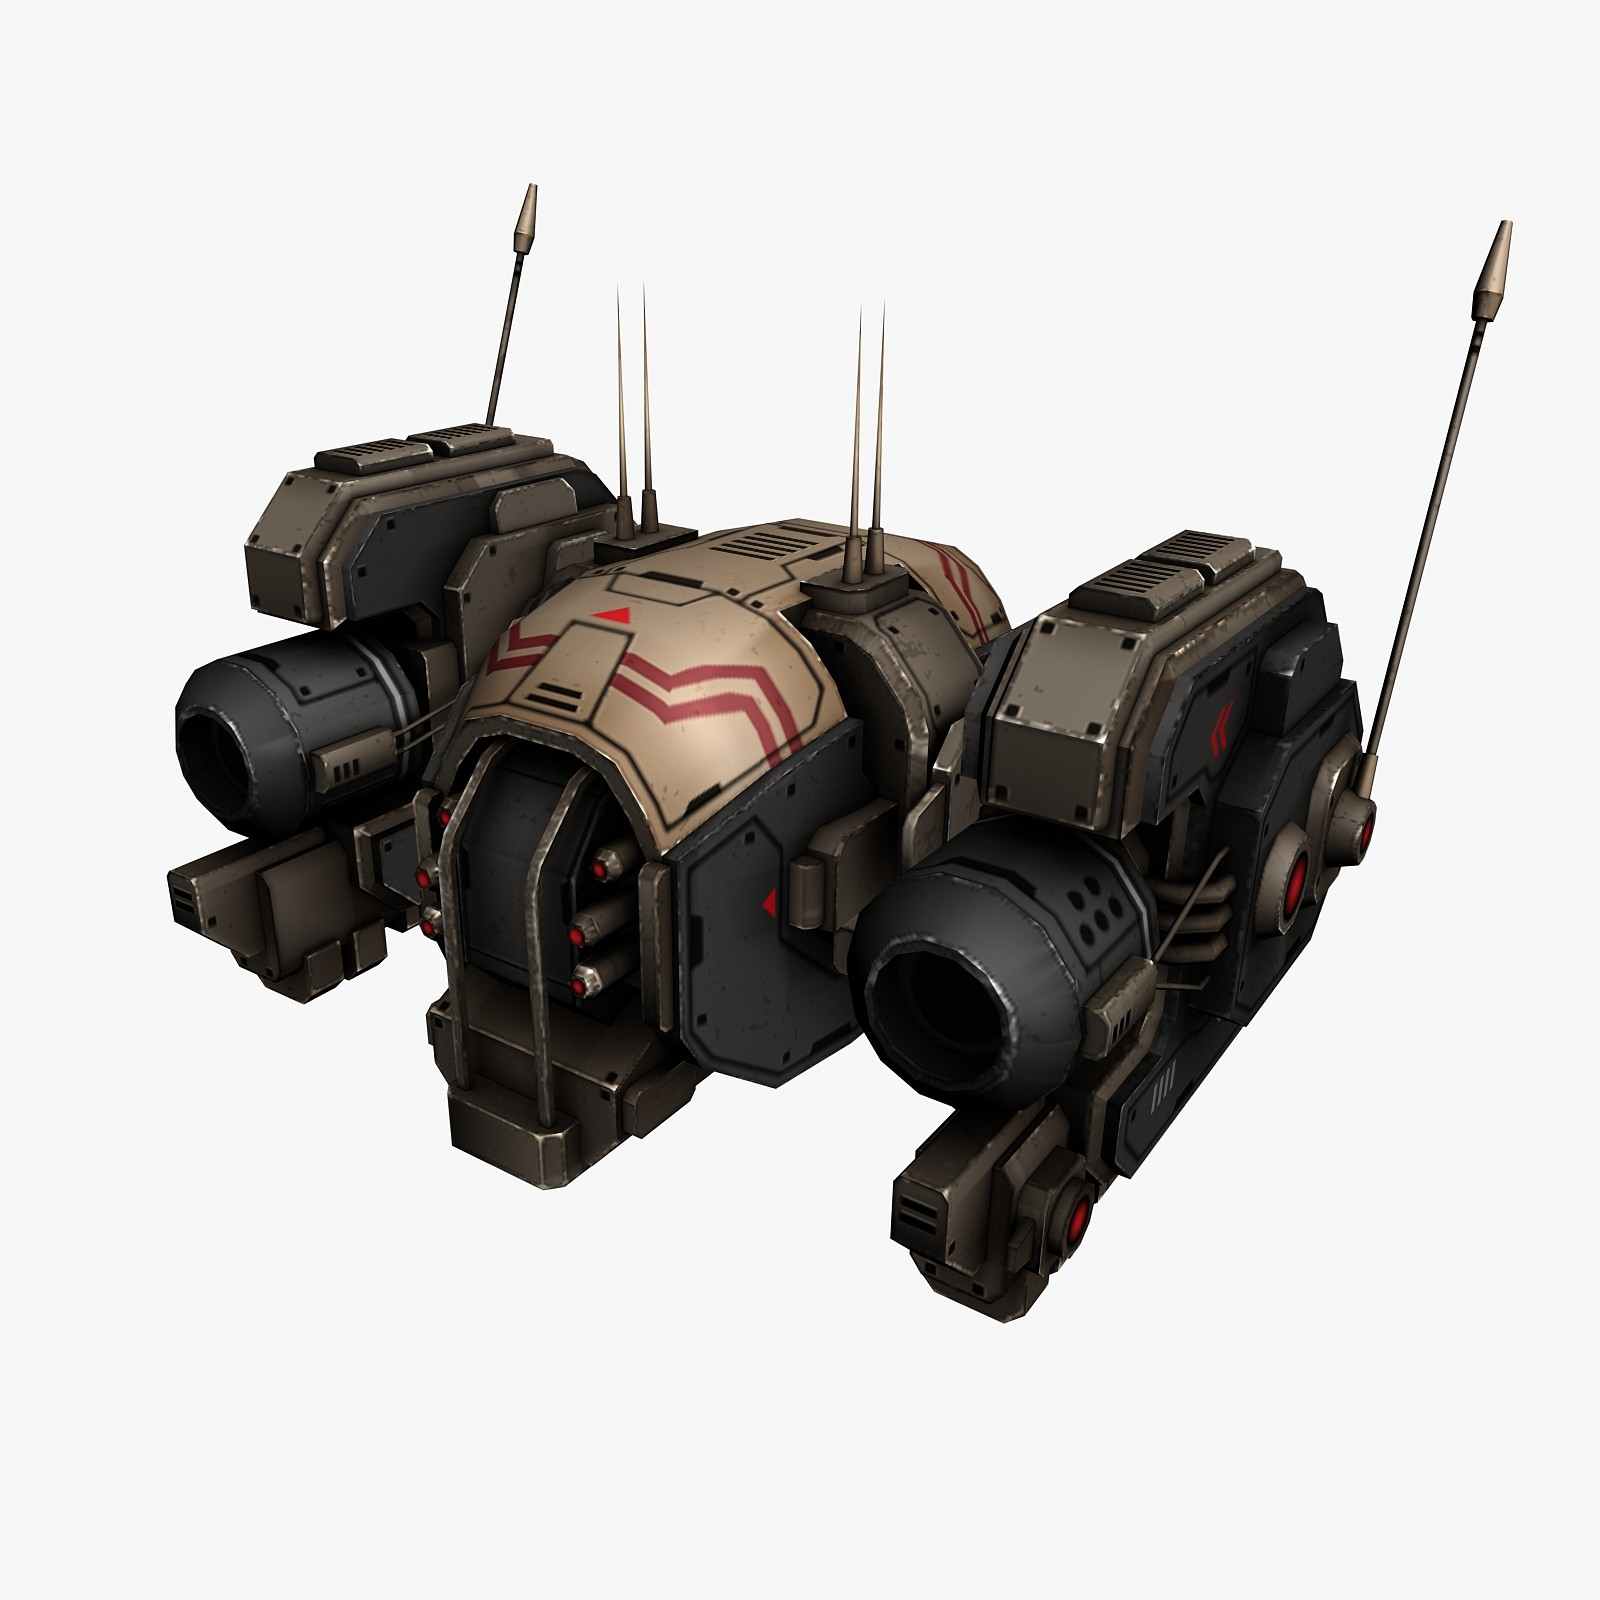 small_combat_drone_3_preview_0.jpg